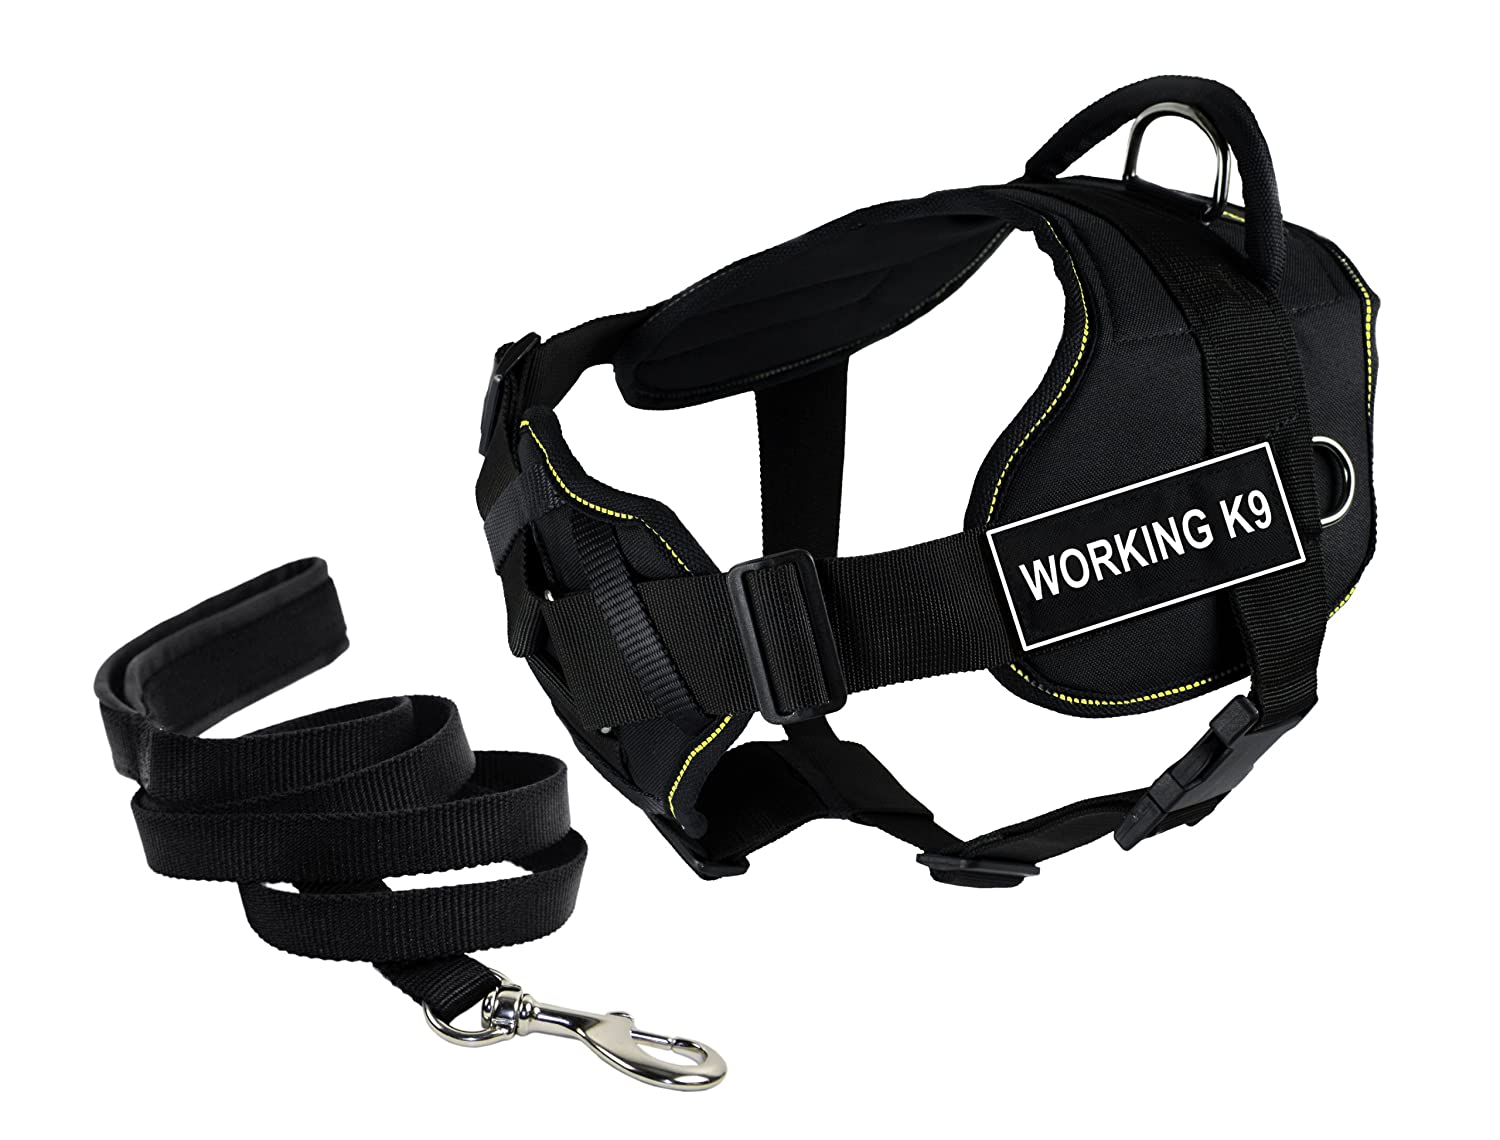 Dean & Tyler's DT Fun Chest Support WORKING K9 Harness, Large, with 6 ft Padded Puppy Leash.